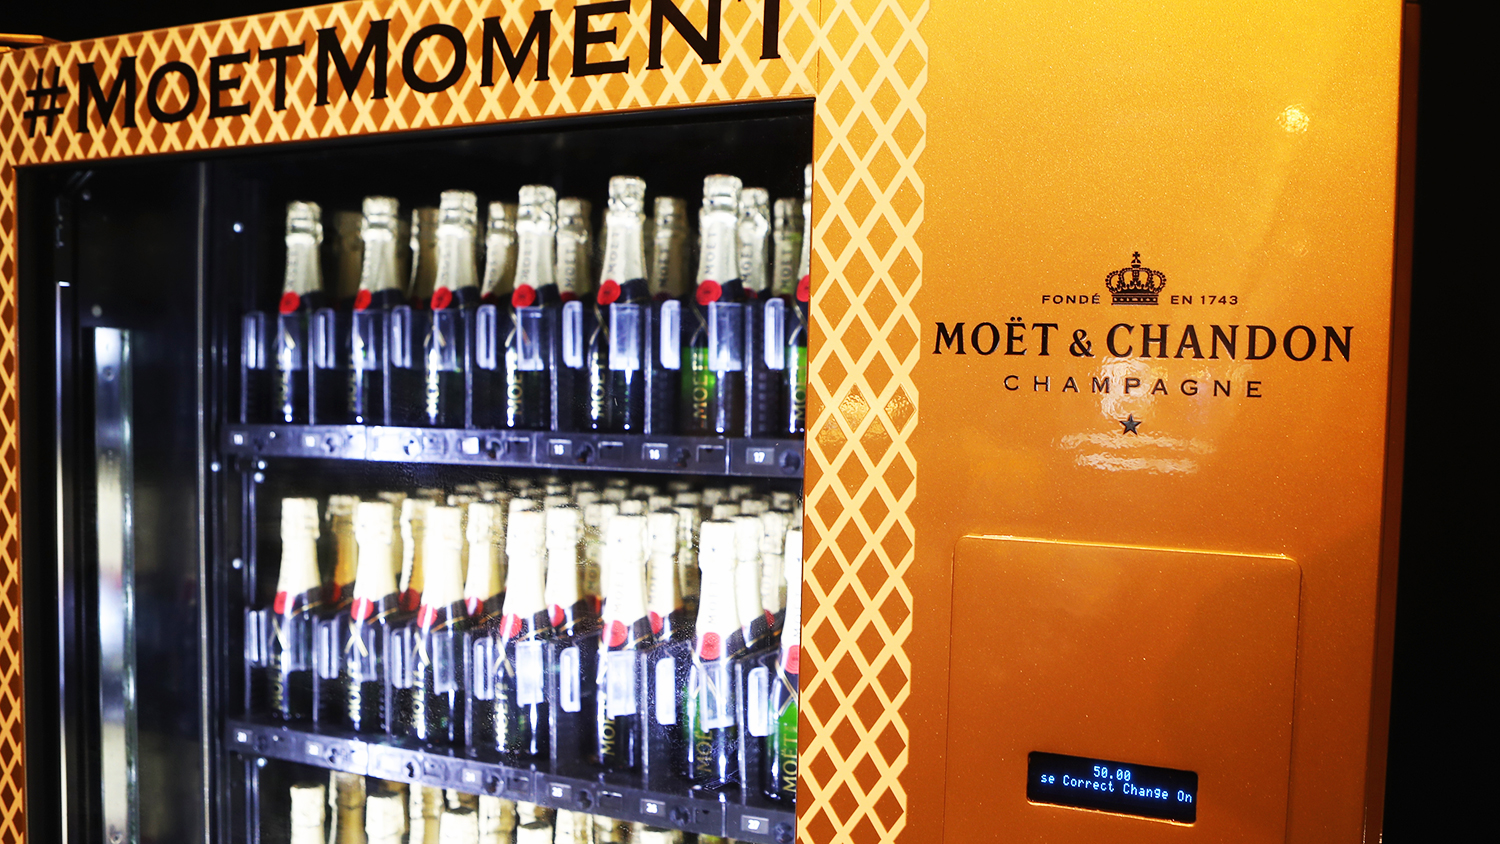 moet vending machine champagne